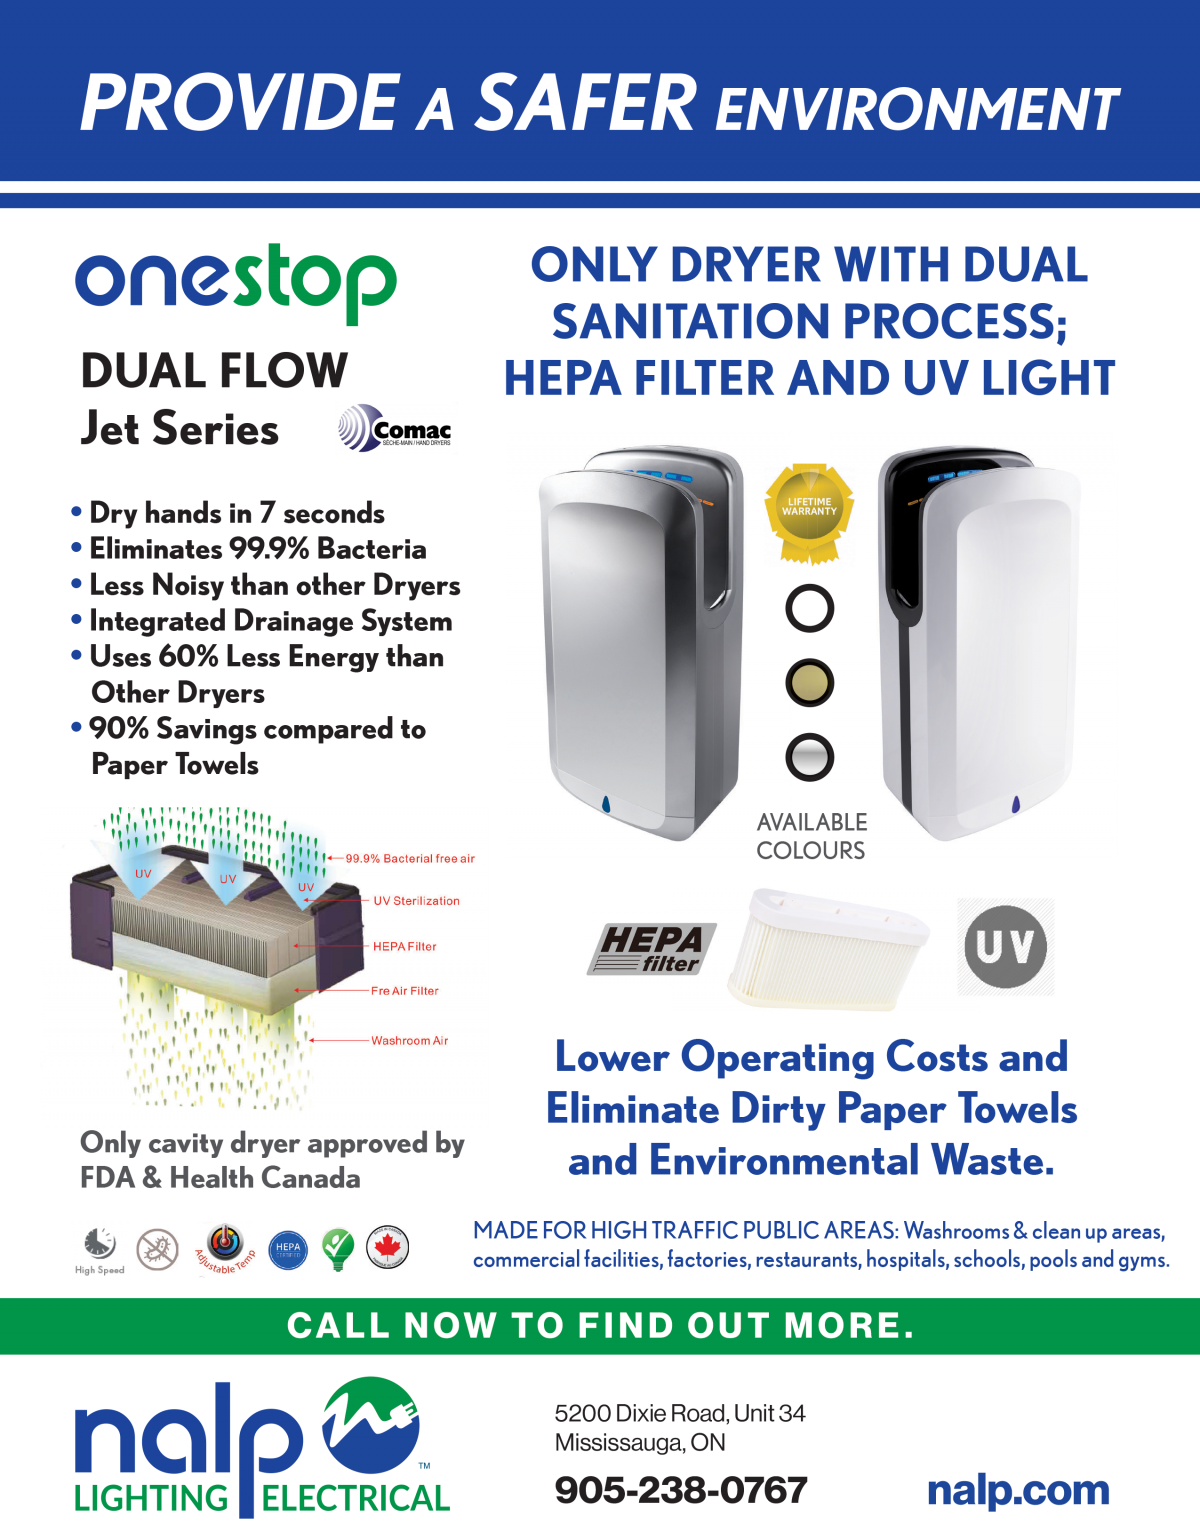 UV and Hepa hand dryer by Comac